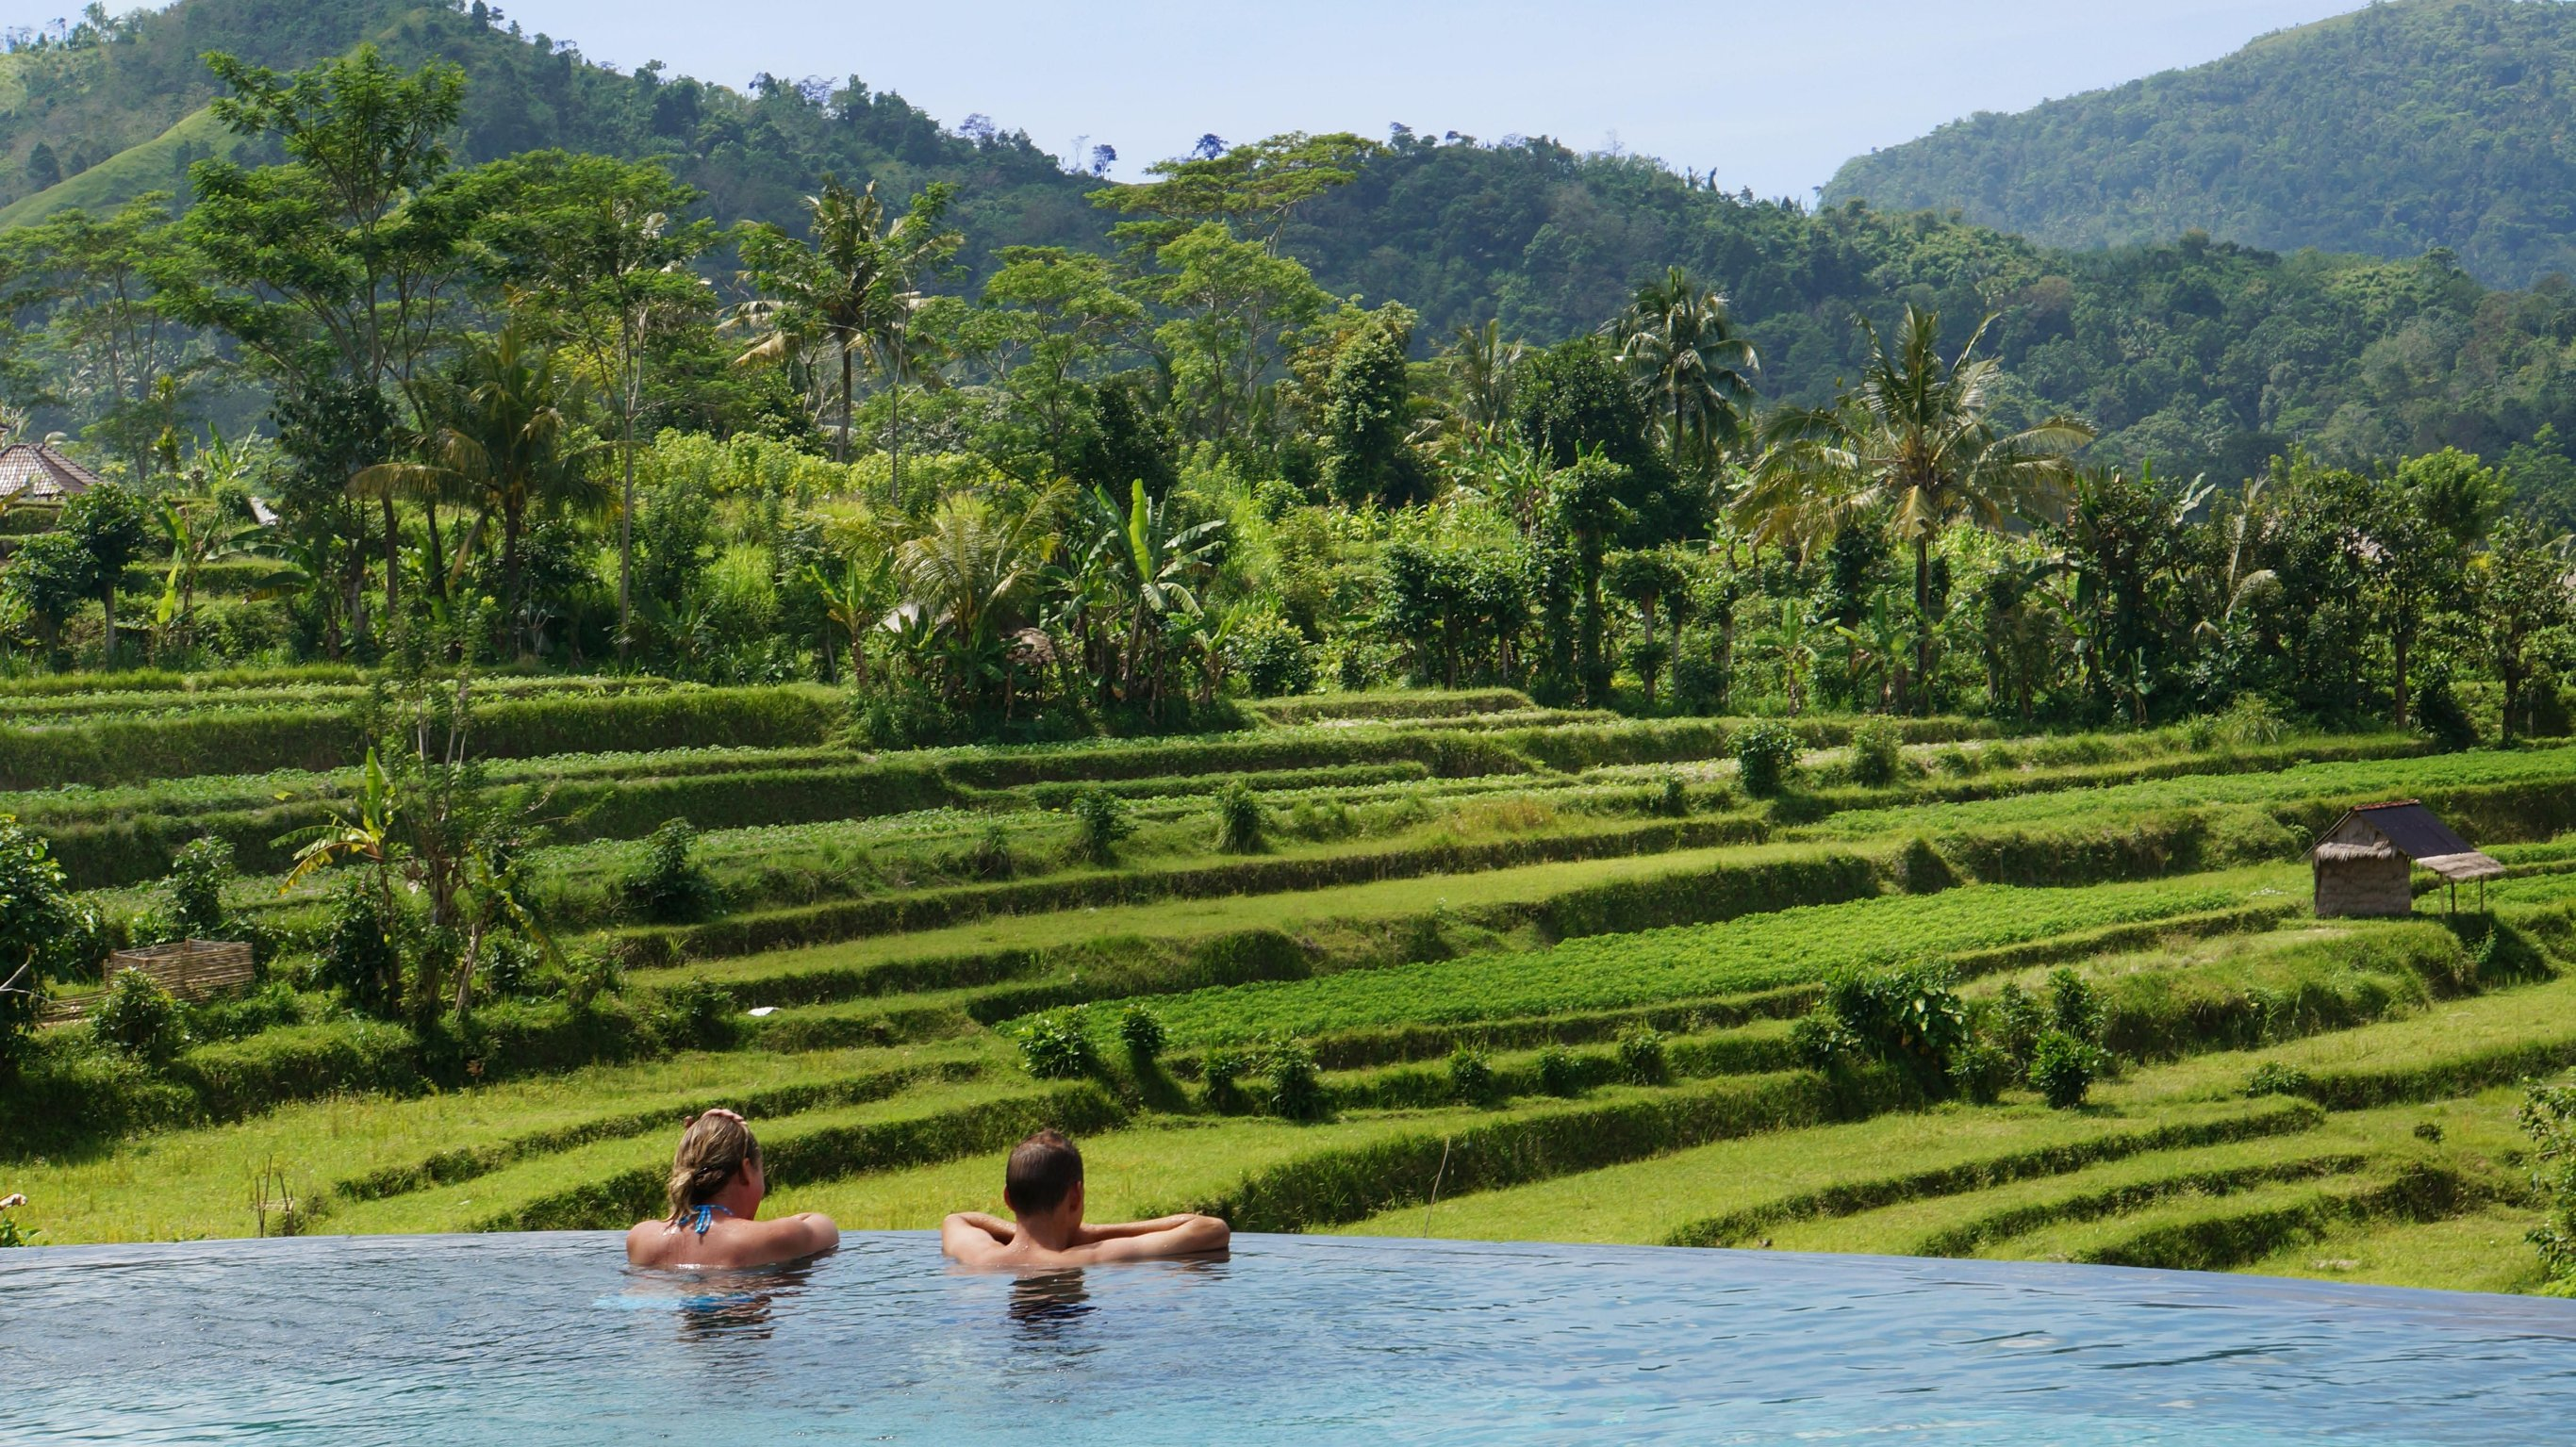 11-Day Bali Mountains & Beaches - Indonesia Itinerary